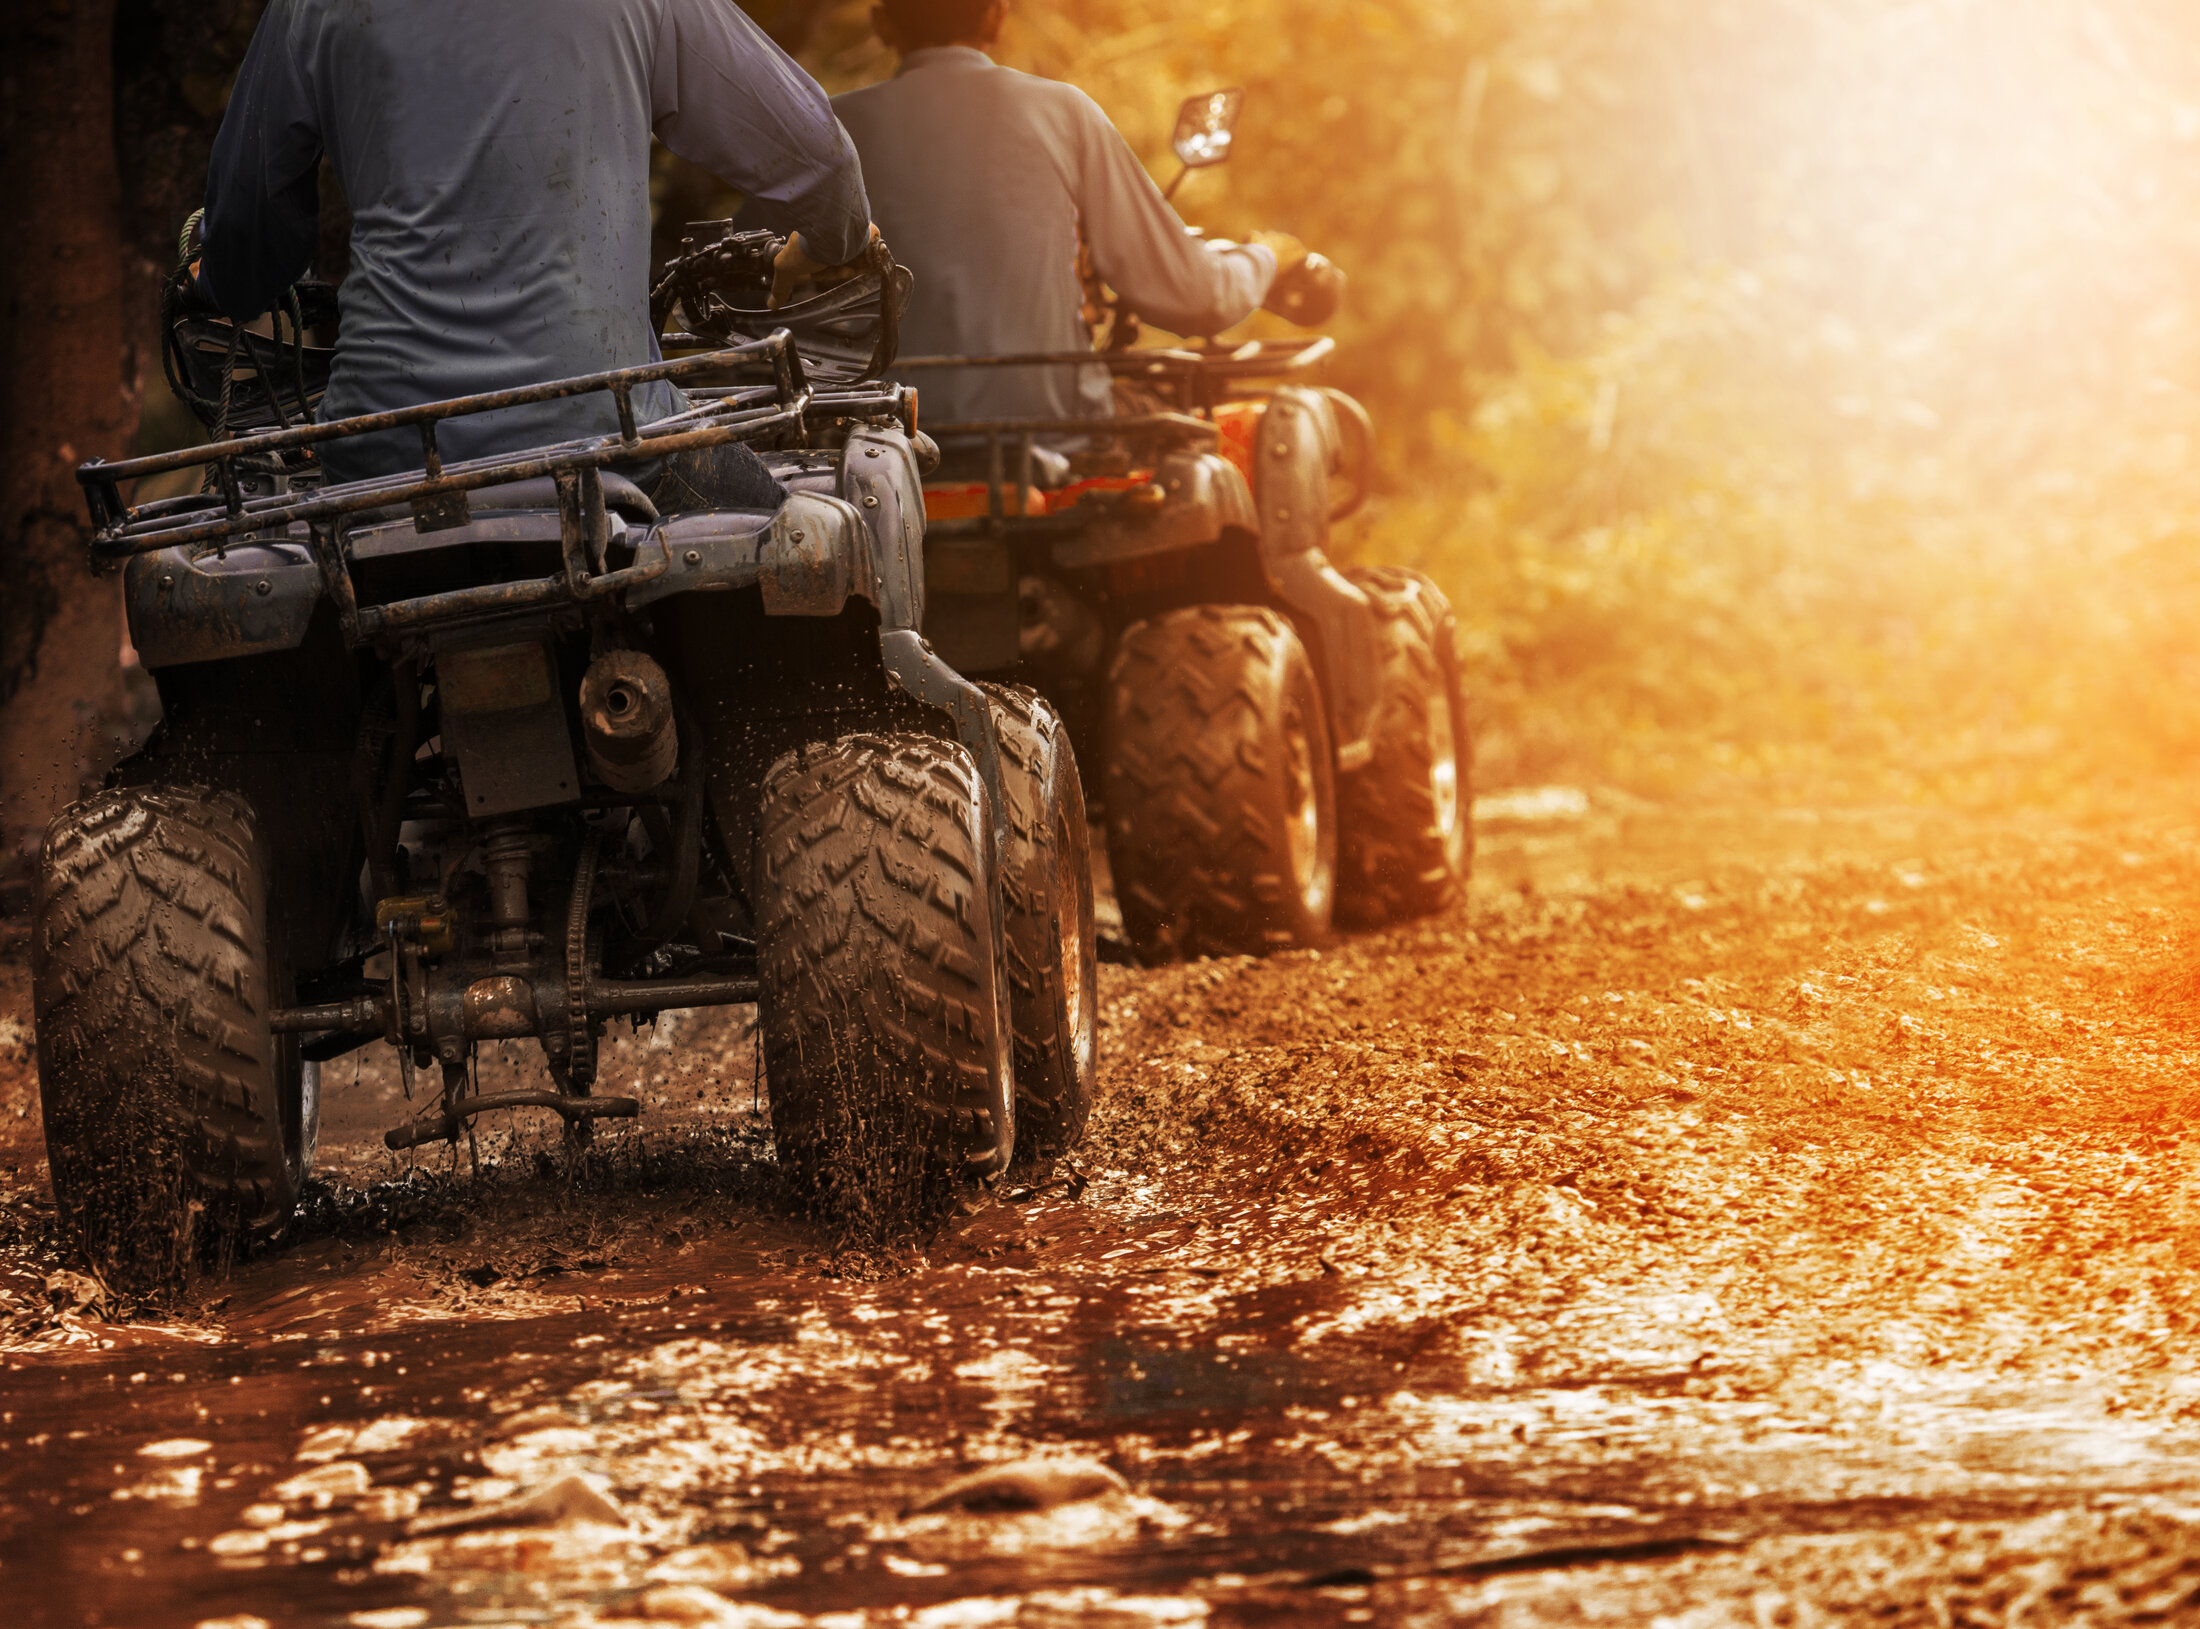 Council votes to extend discussion on ORV linkages to fall